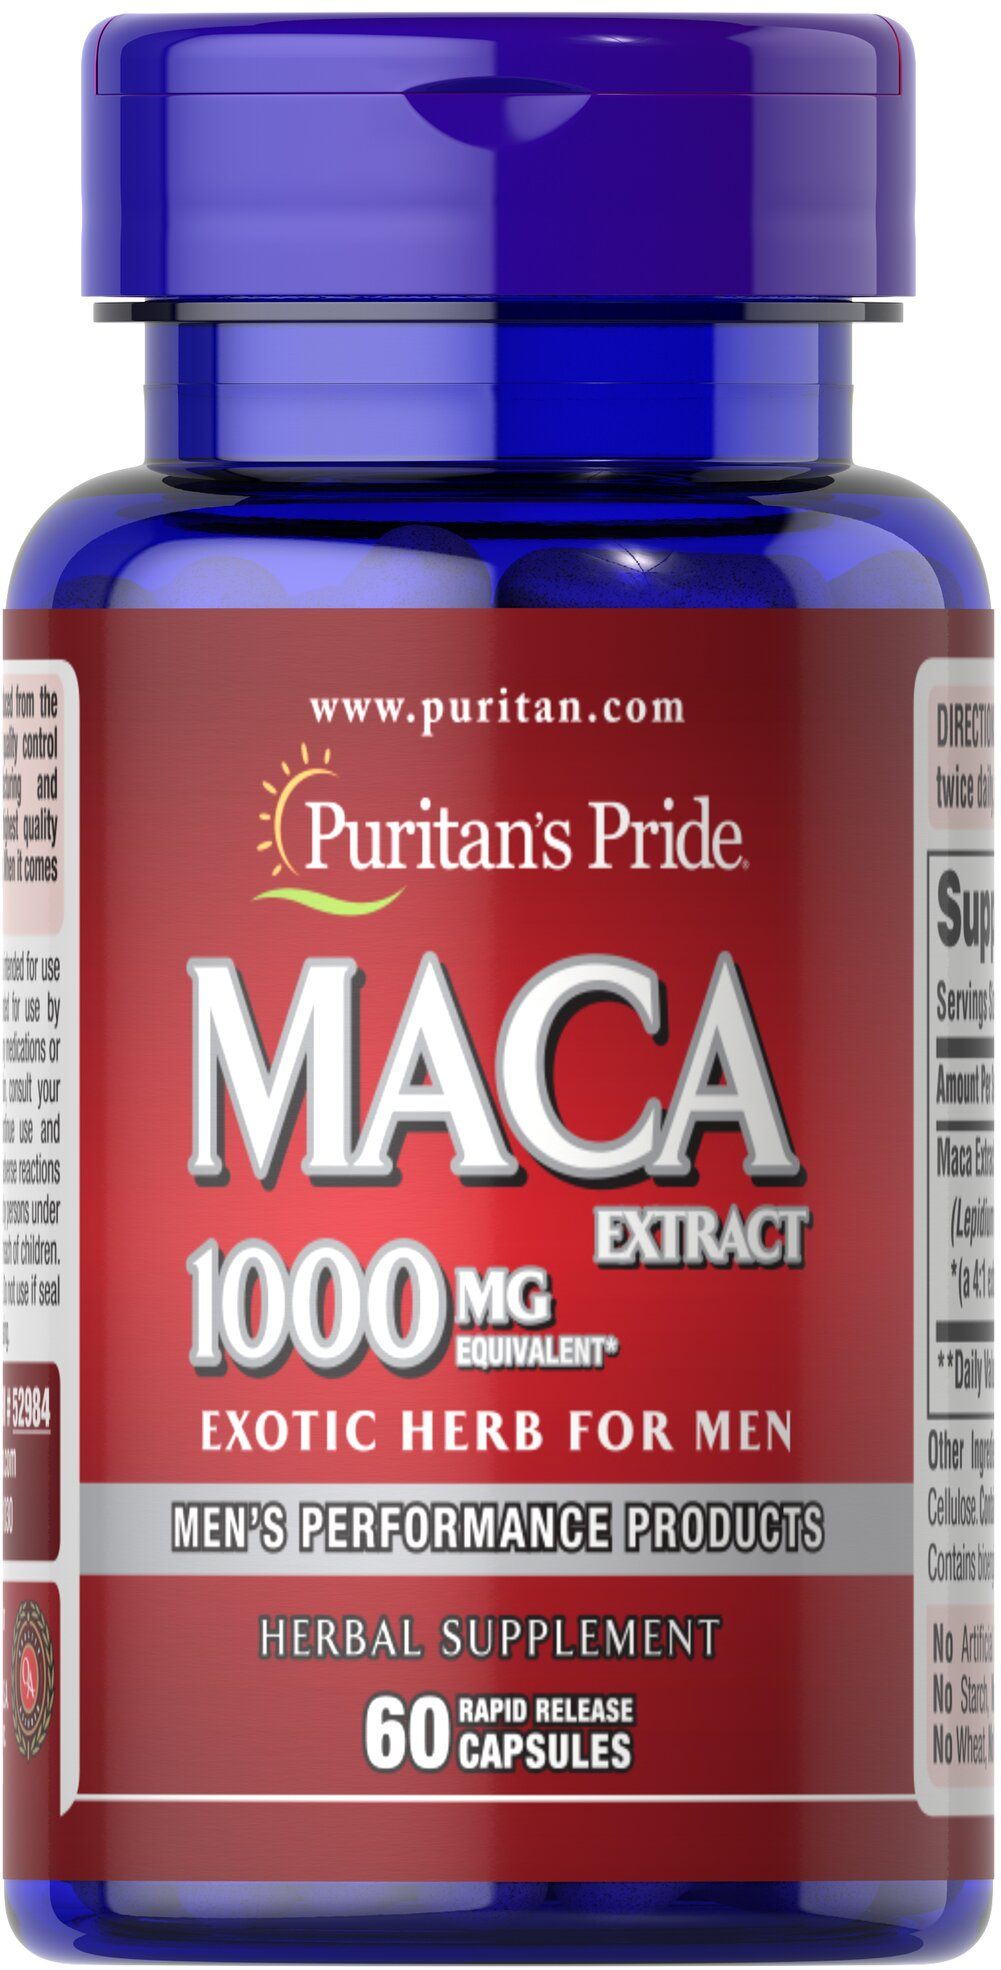 Maca 1000 mg Exotic Herb for Men  60 Capsules 1000 mg $12.29